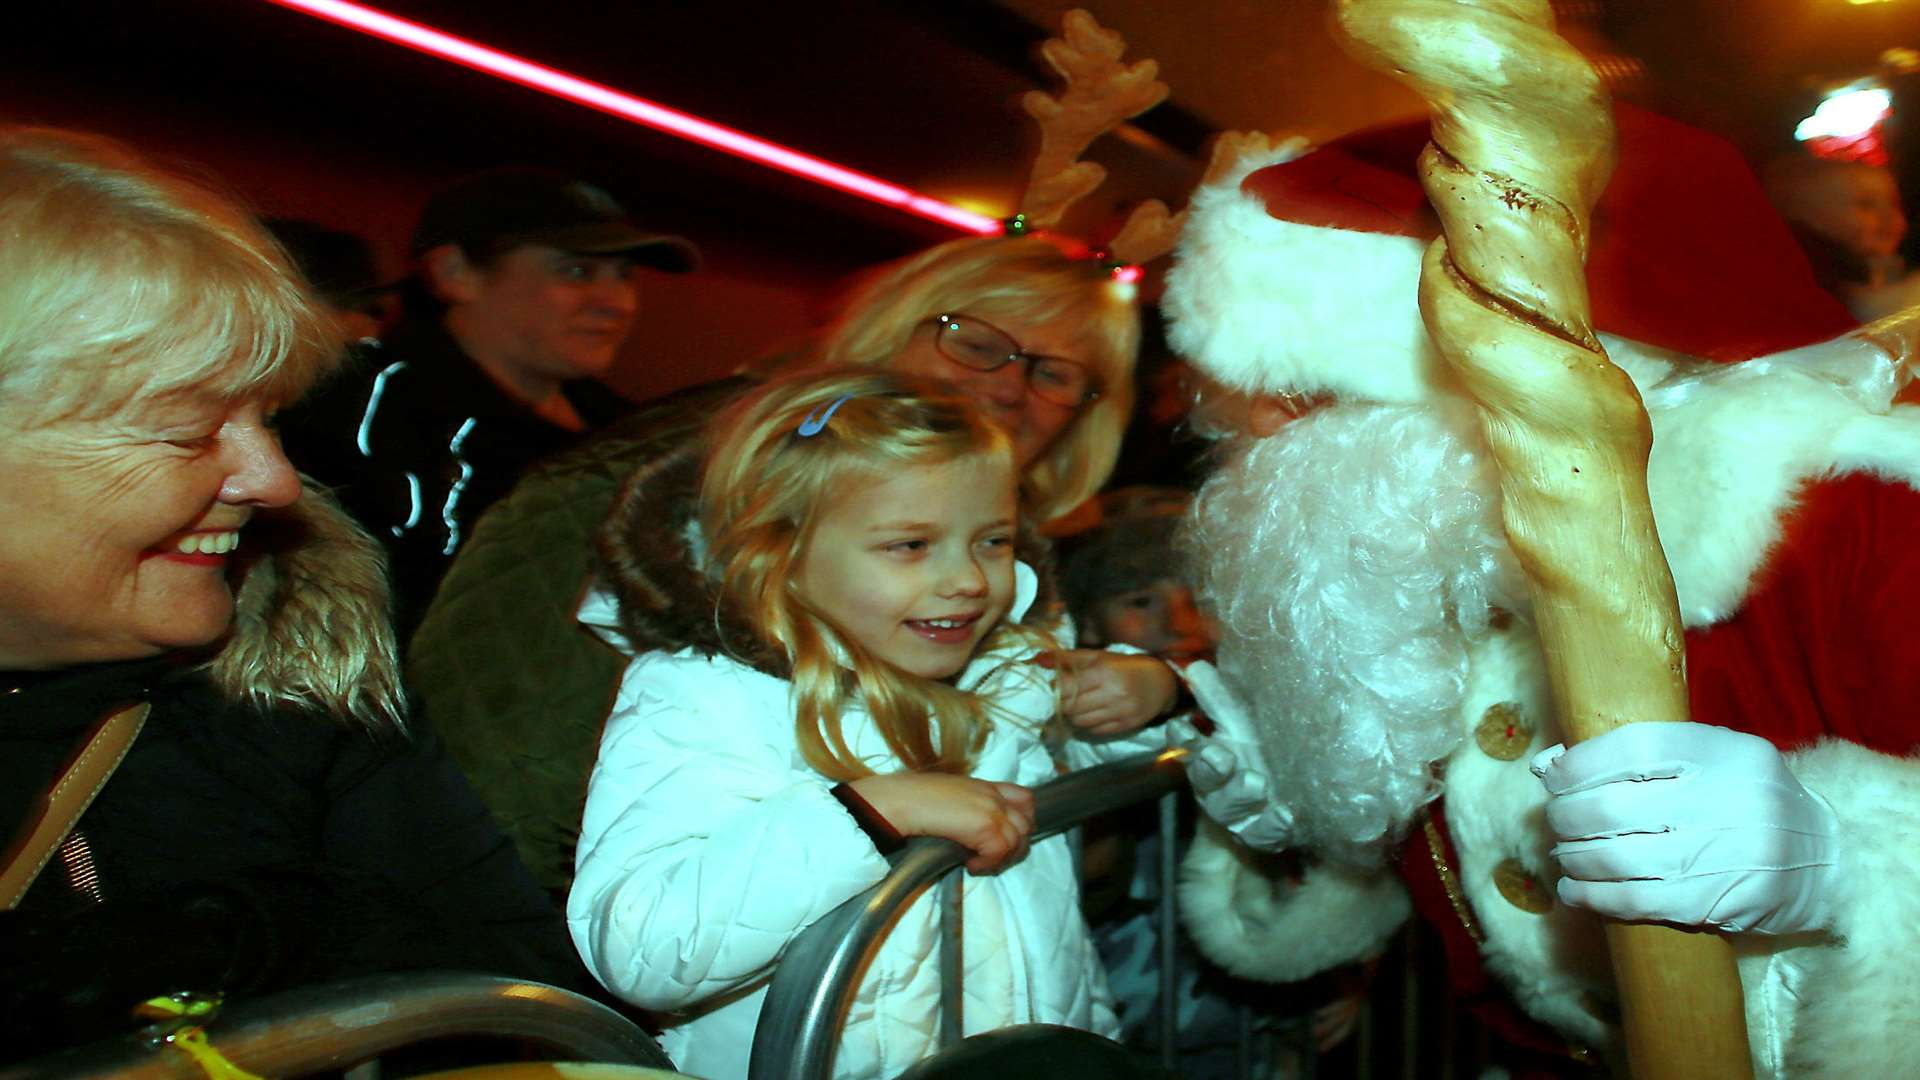 Last year's event featured Father Christmas